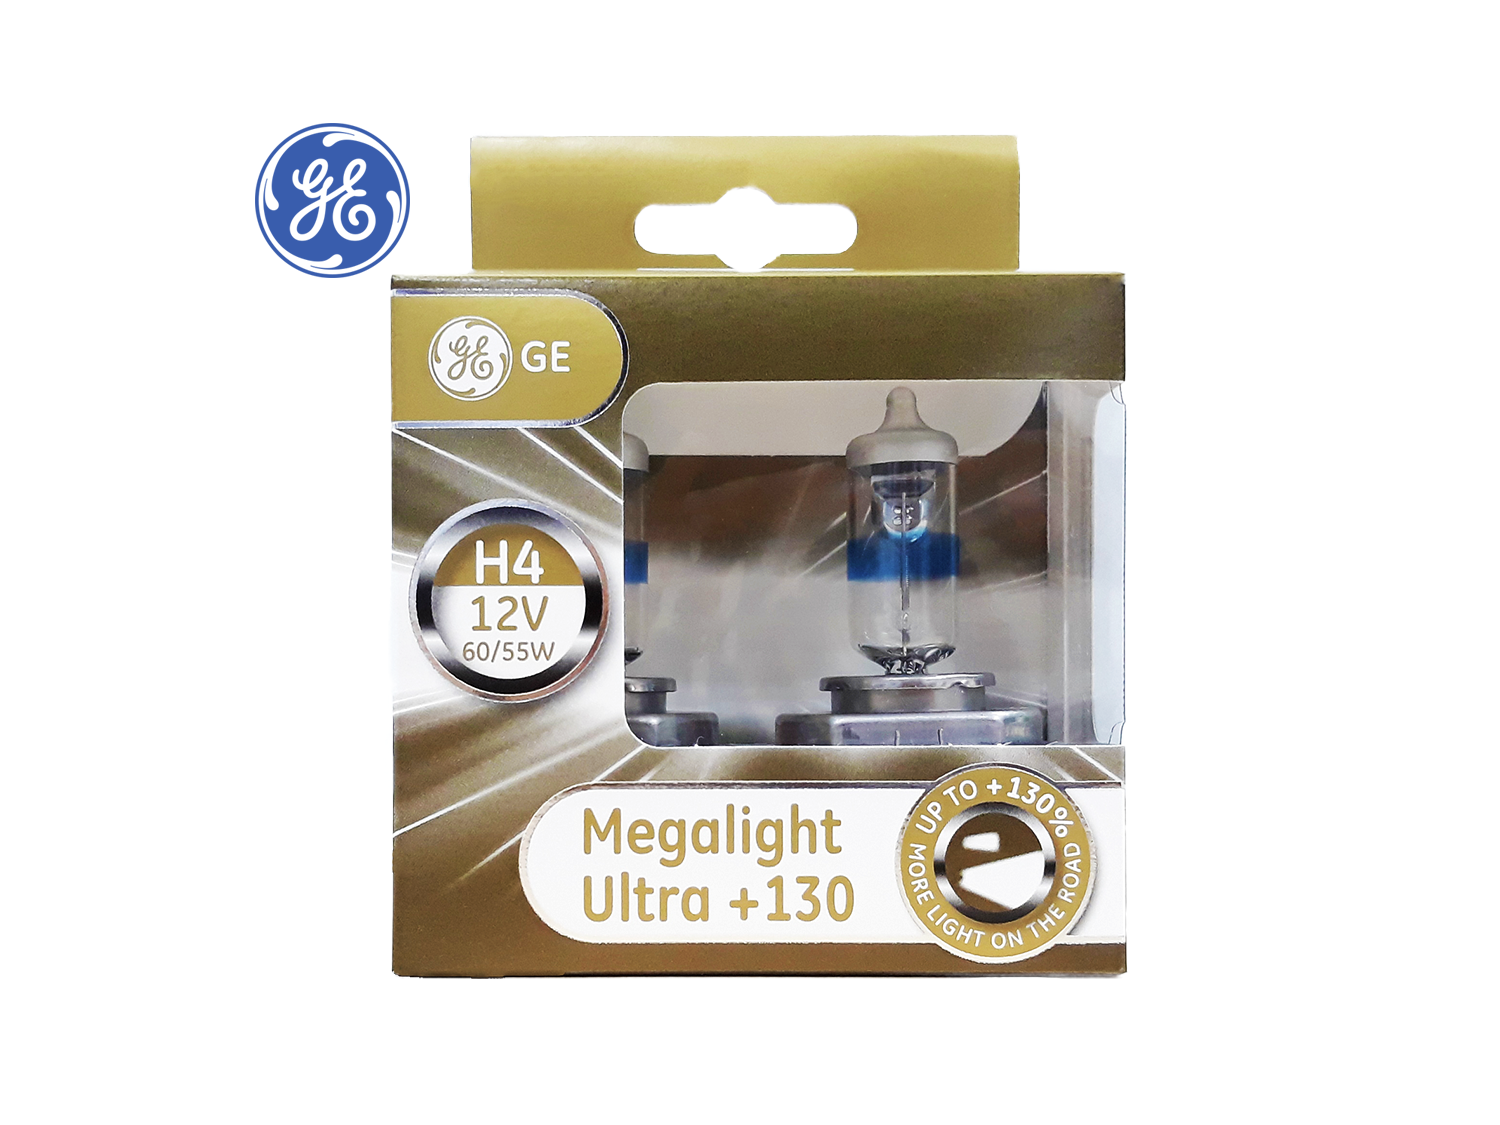 GE H4 +130% Megalight Ultra Headlight lamps ; SKU: 93039913